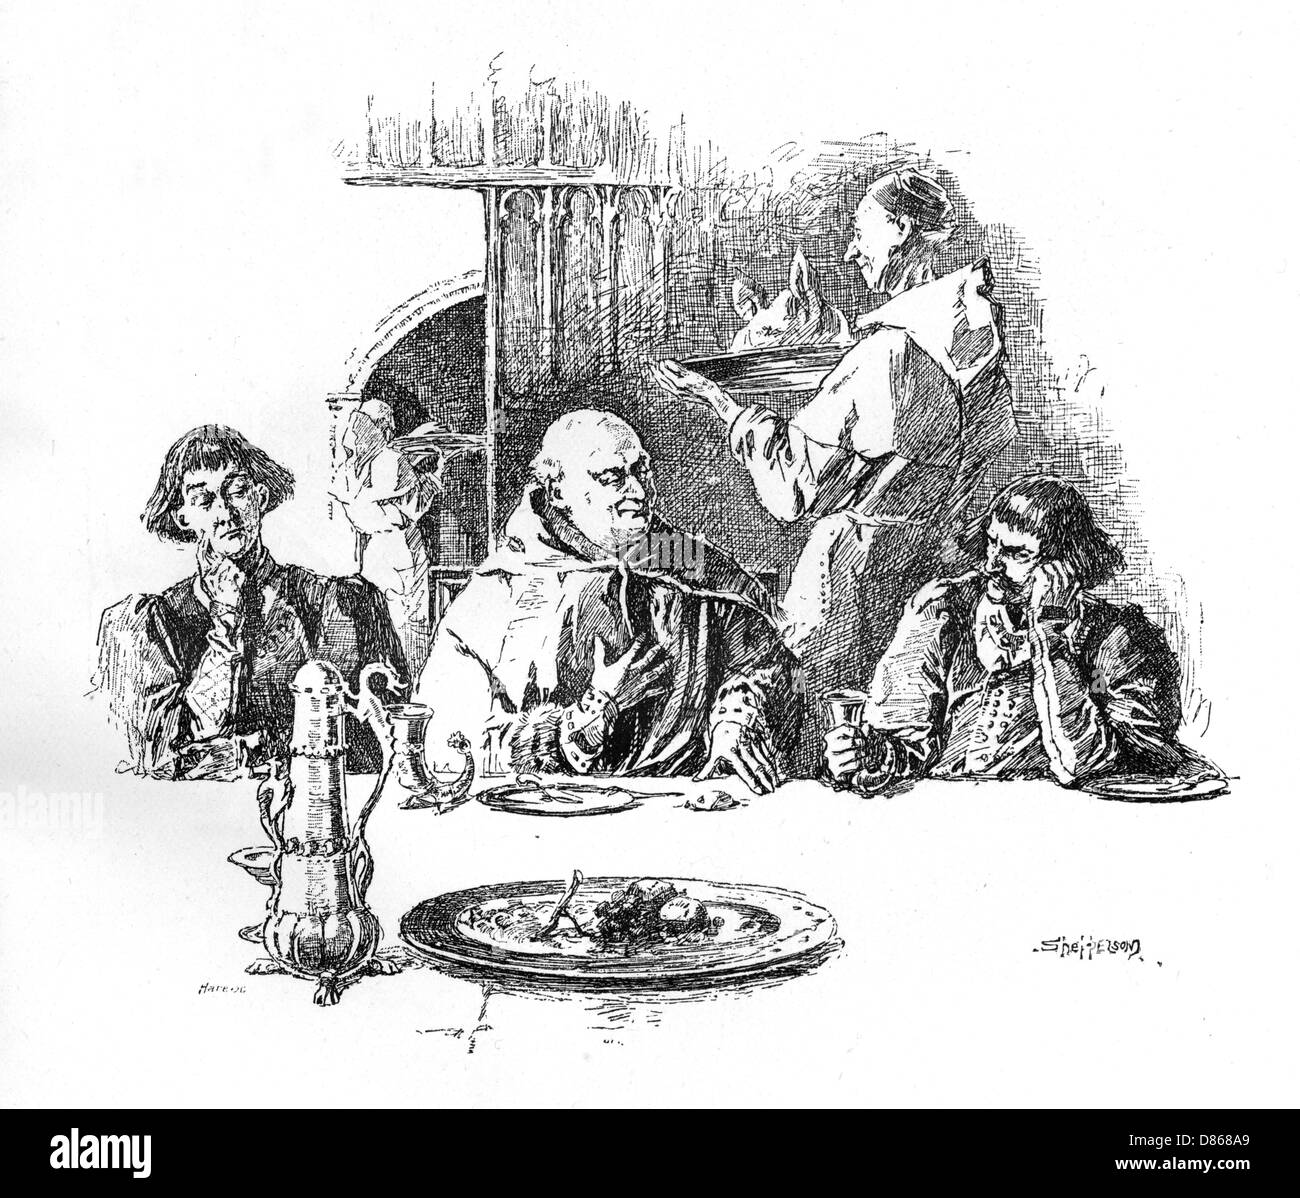 Medieval Bores And Boars After The Feast - Stock Image